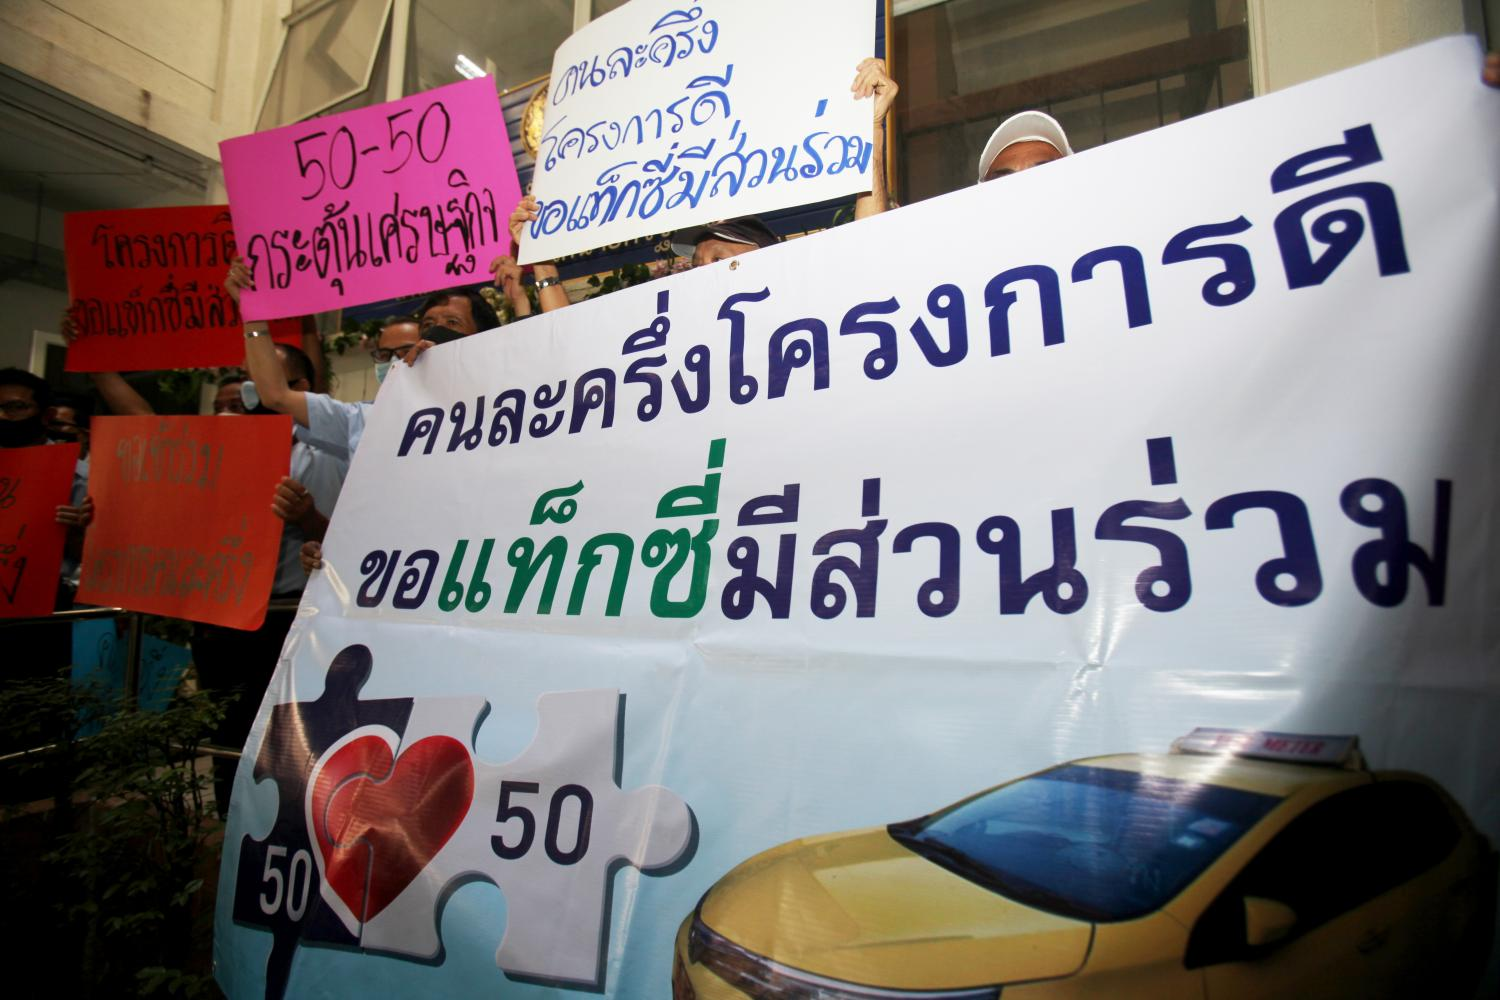 Taxi drivers urge the government to include rider fares in the co-payment scheme. (Photo by Nutthawat Wichieanbut)